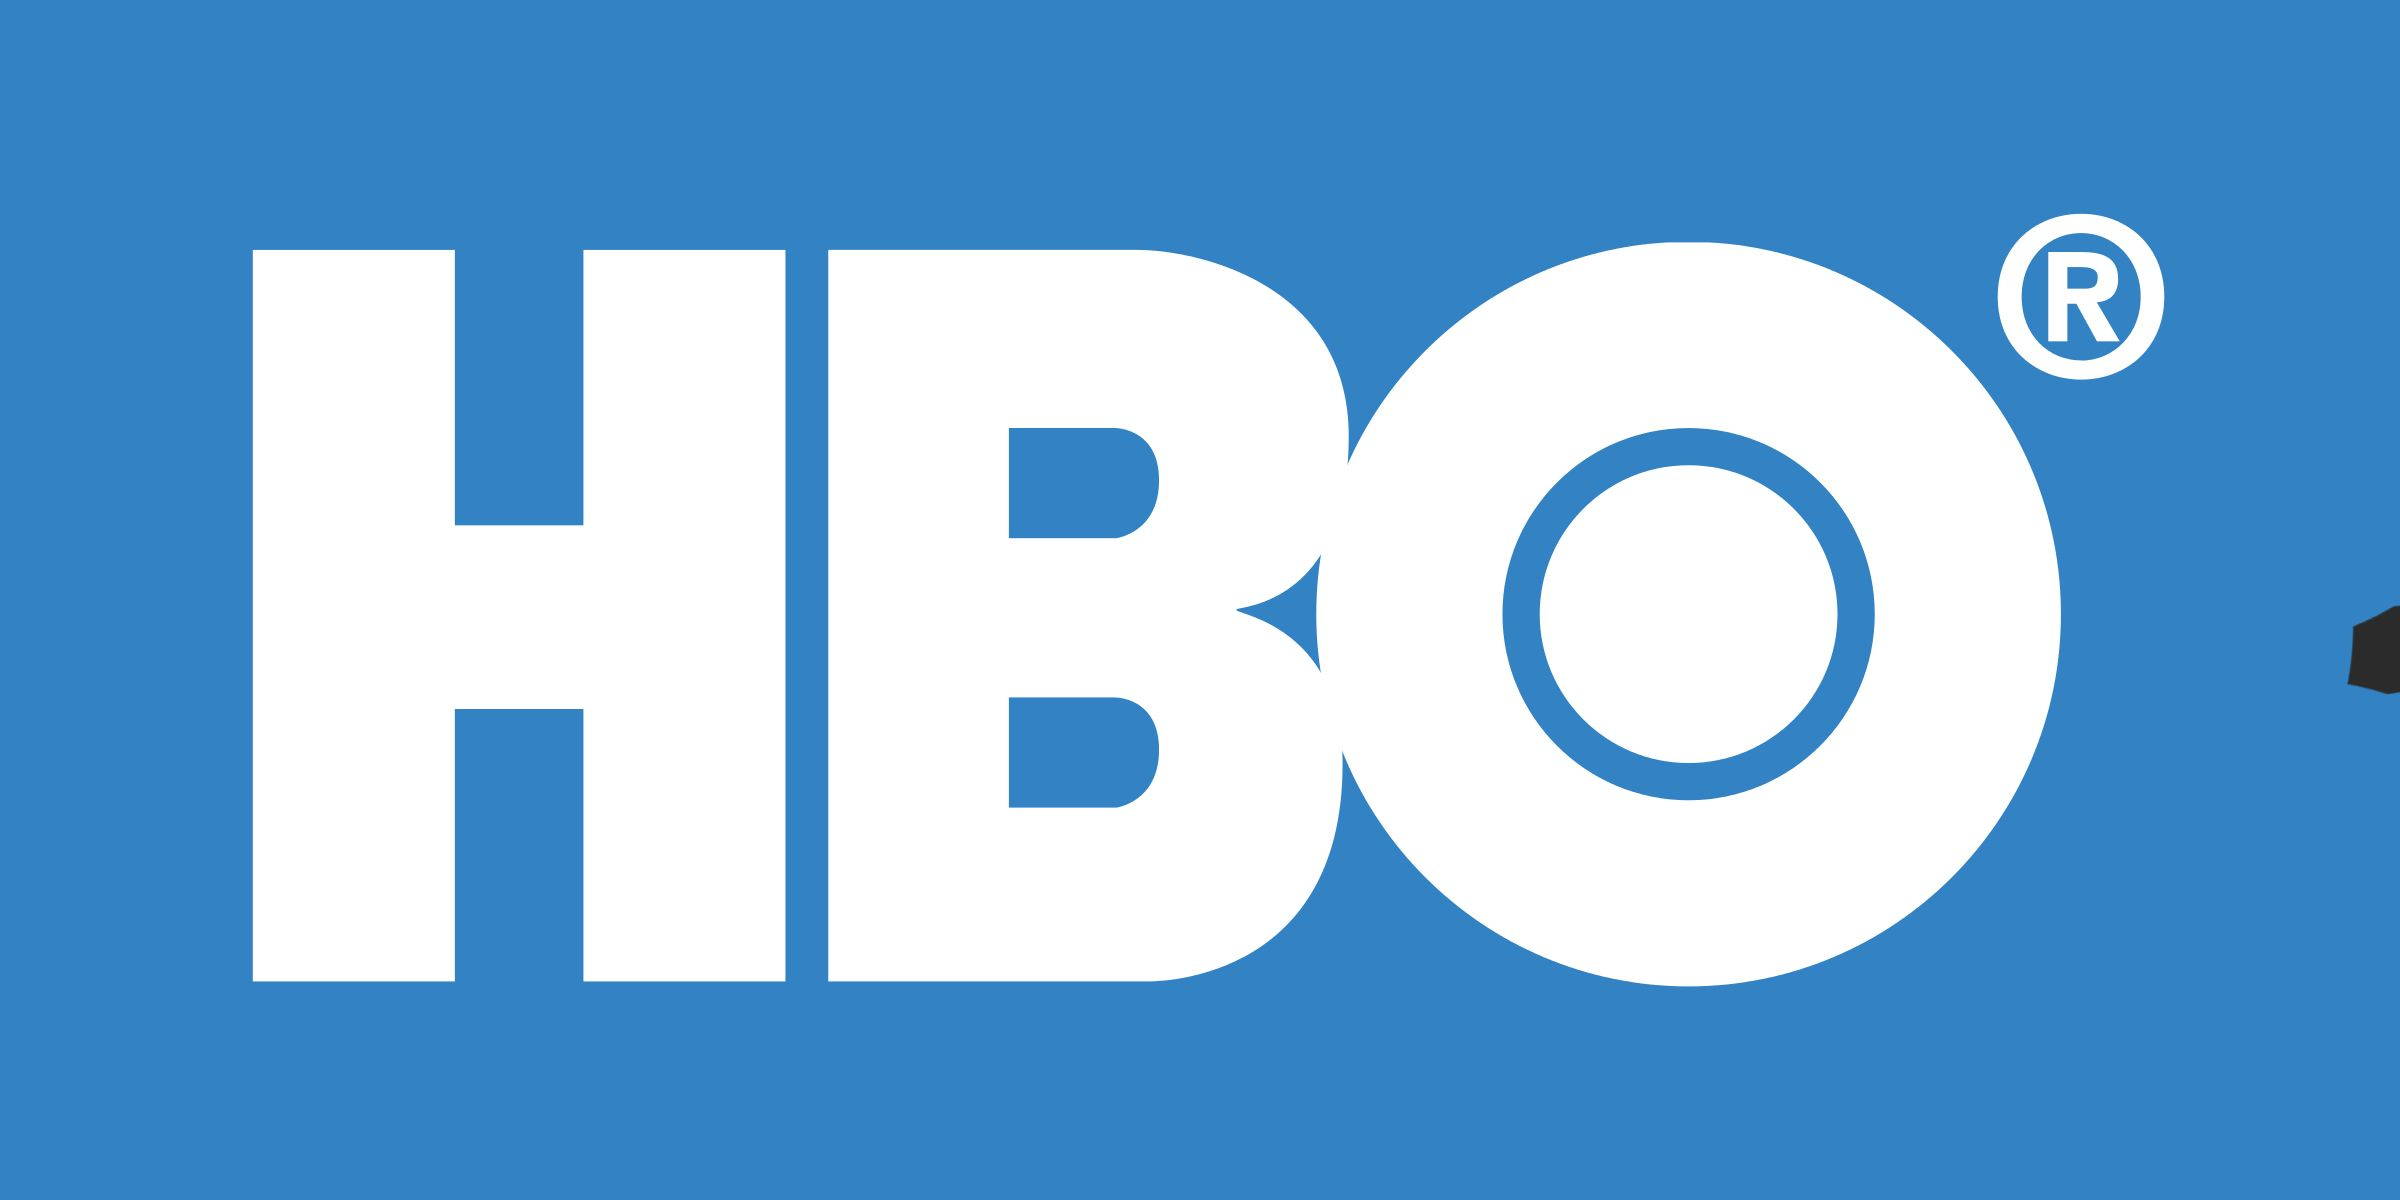 HBO Logo - HBO Logo, Home Box Office symbol, meaning